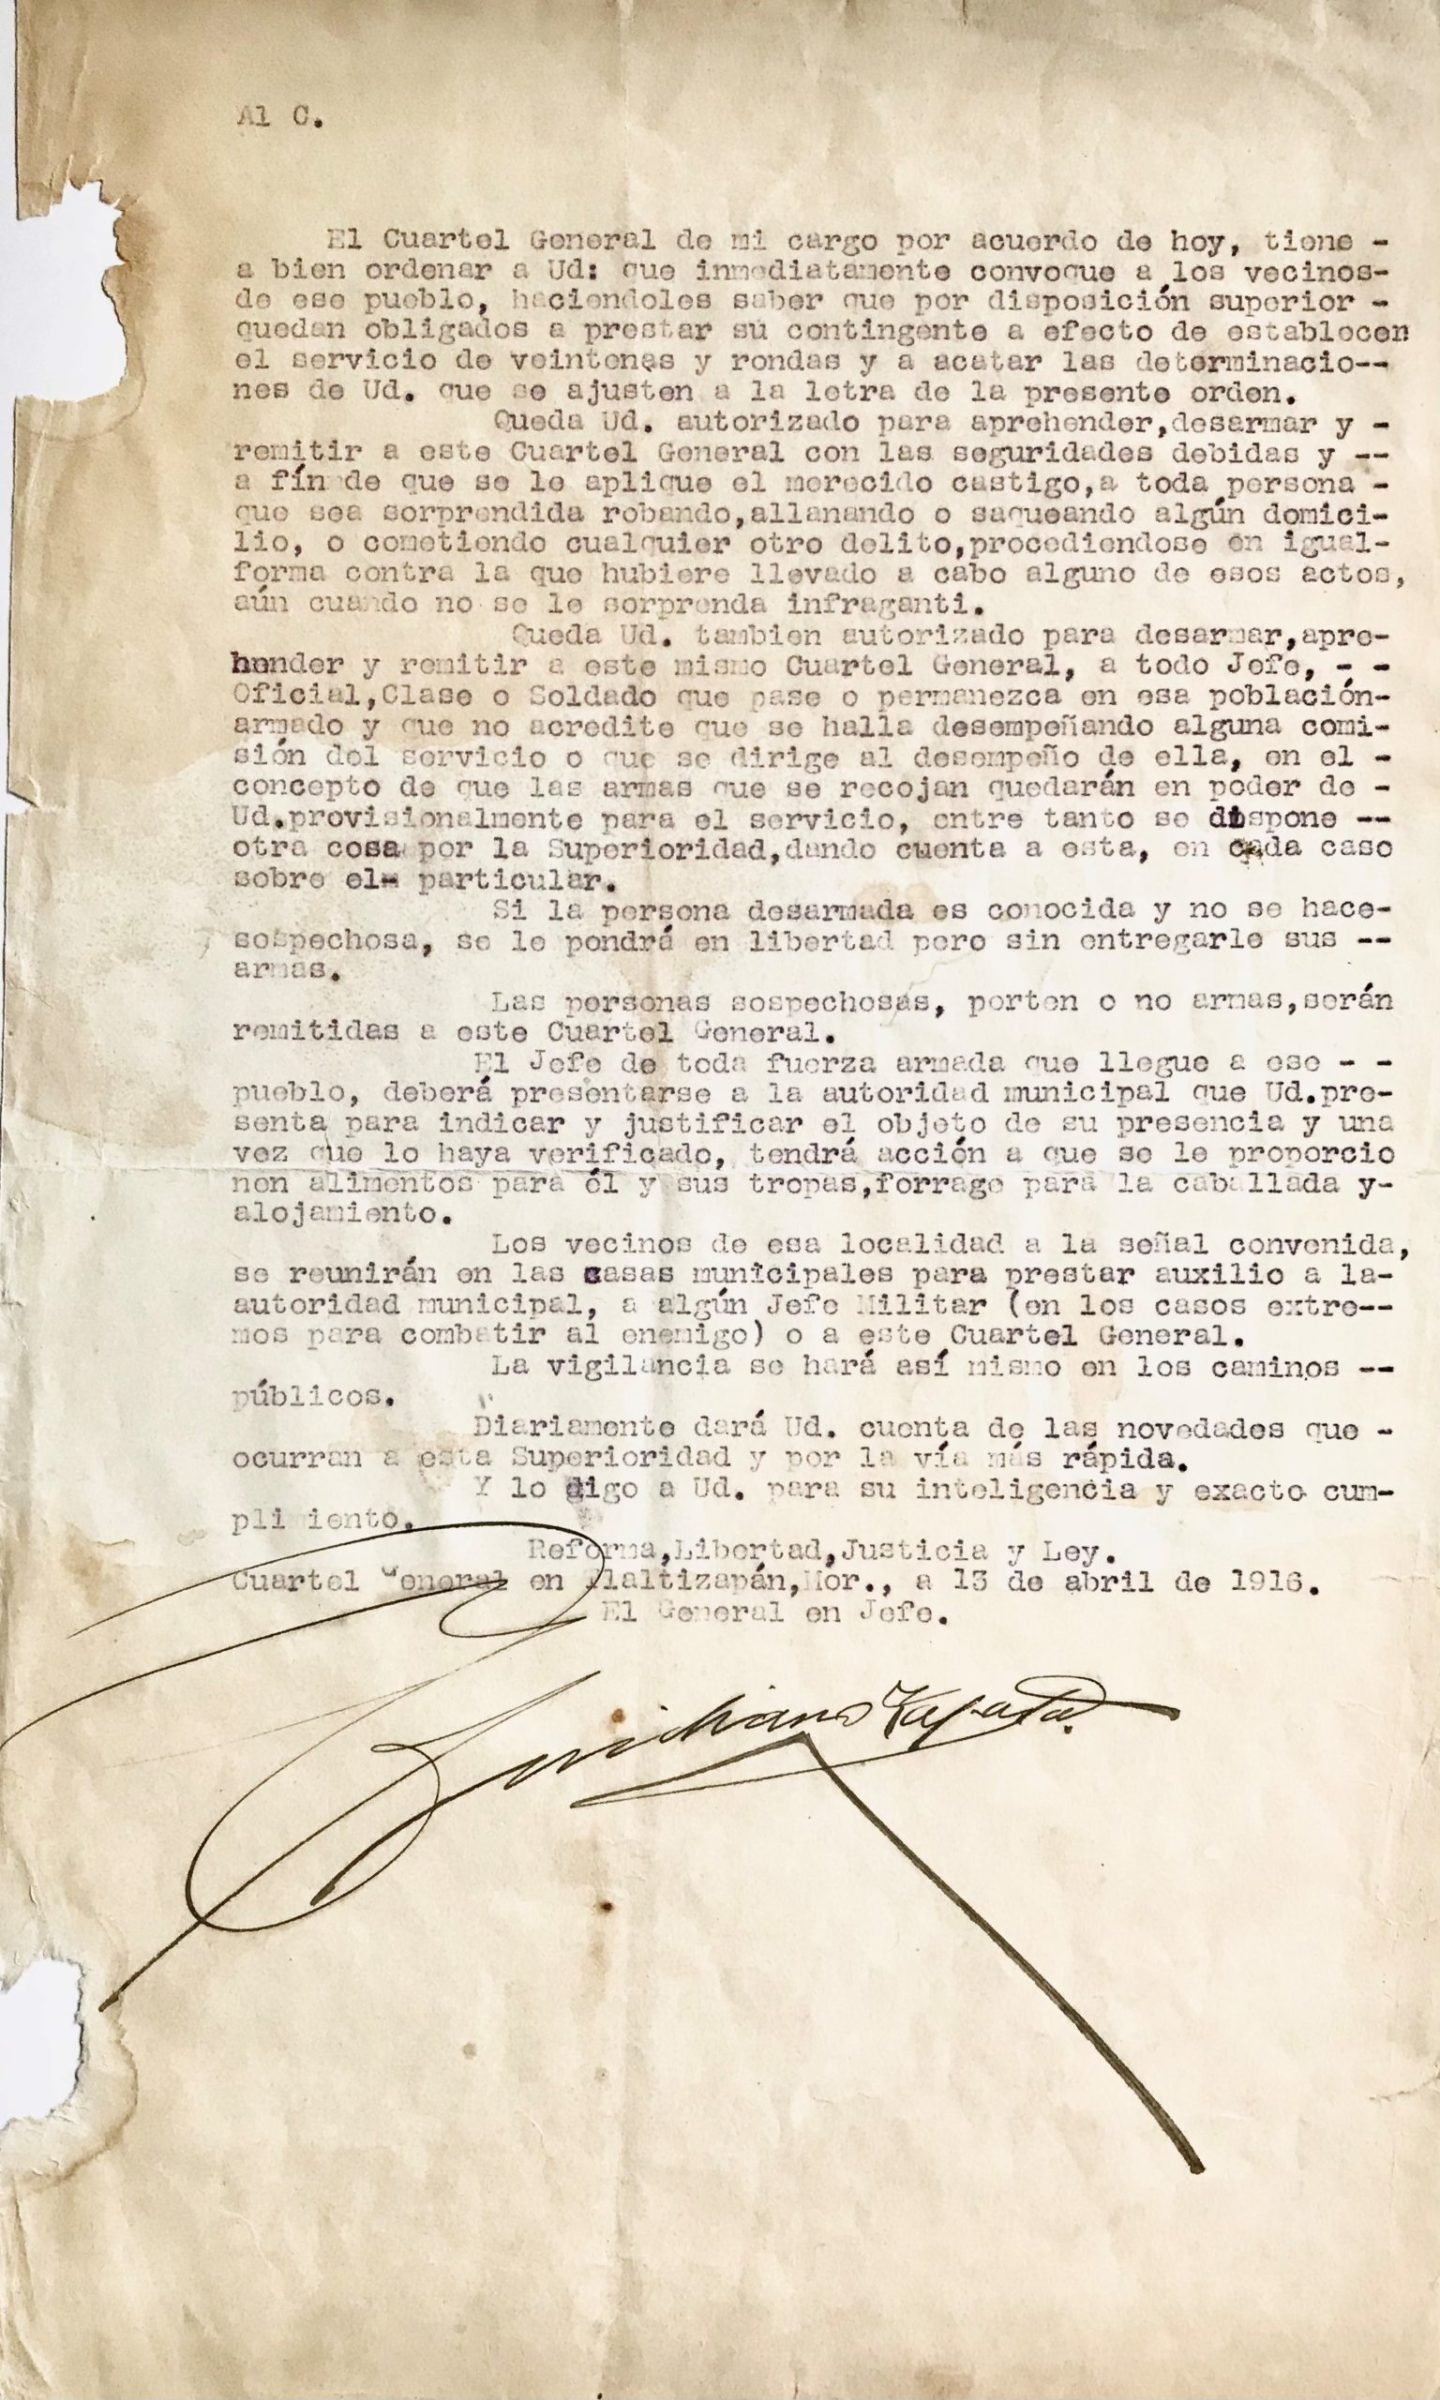 Zapata Establishes Law & Order in Tlaltizapan Where He is Headquartered